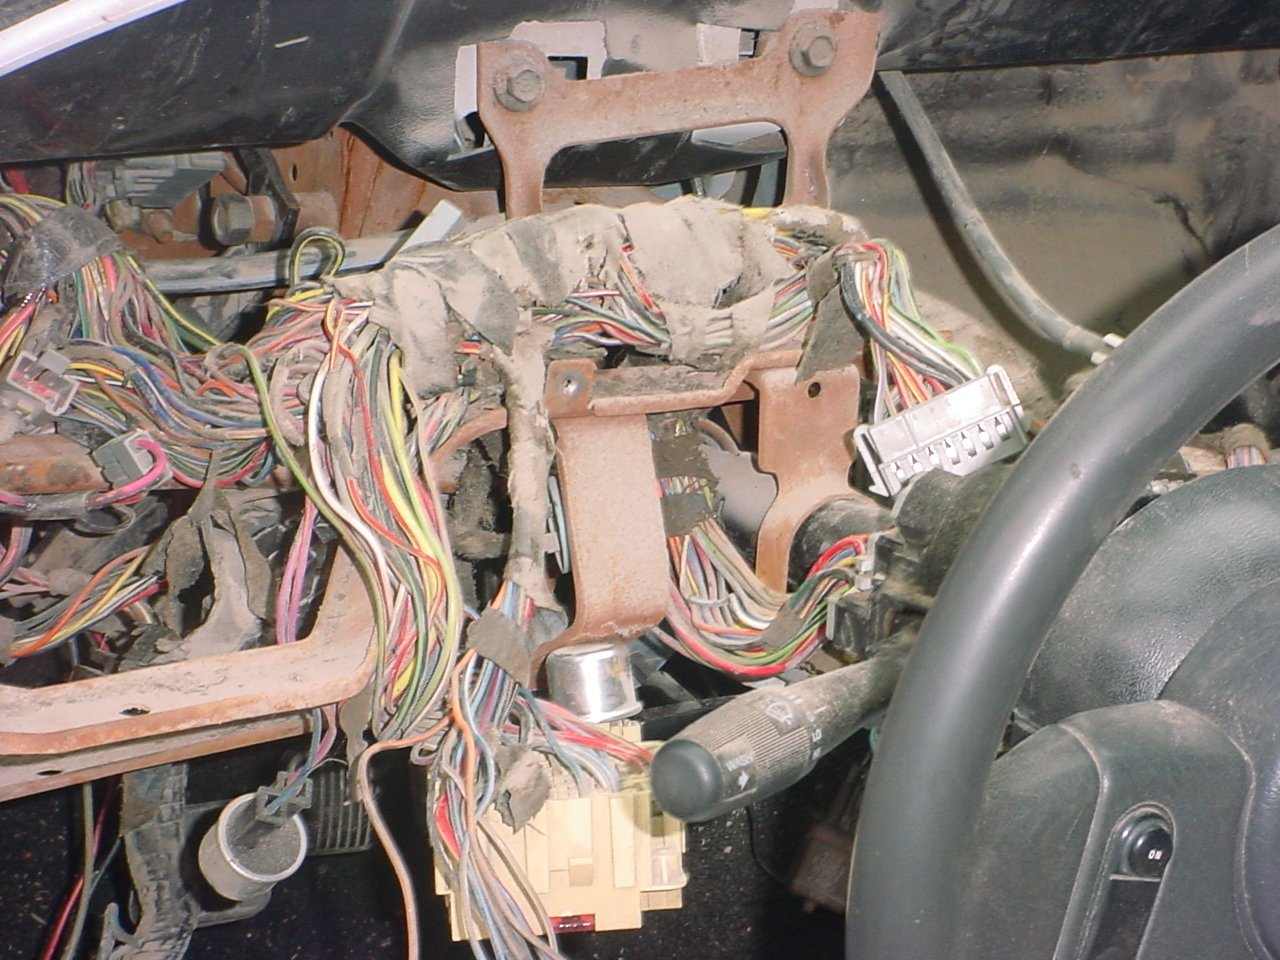 hight resolution of 1991 mustang dash wiring diagram wiring diagram online 1991 mustang door lock wiring 1991 mustang dash wiring diagram